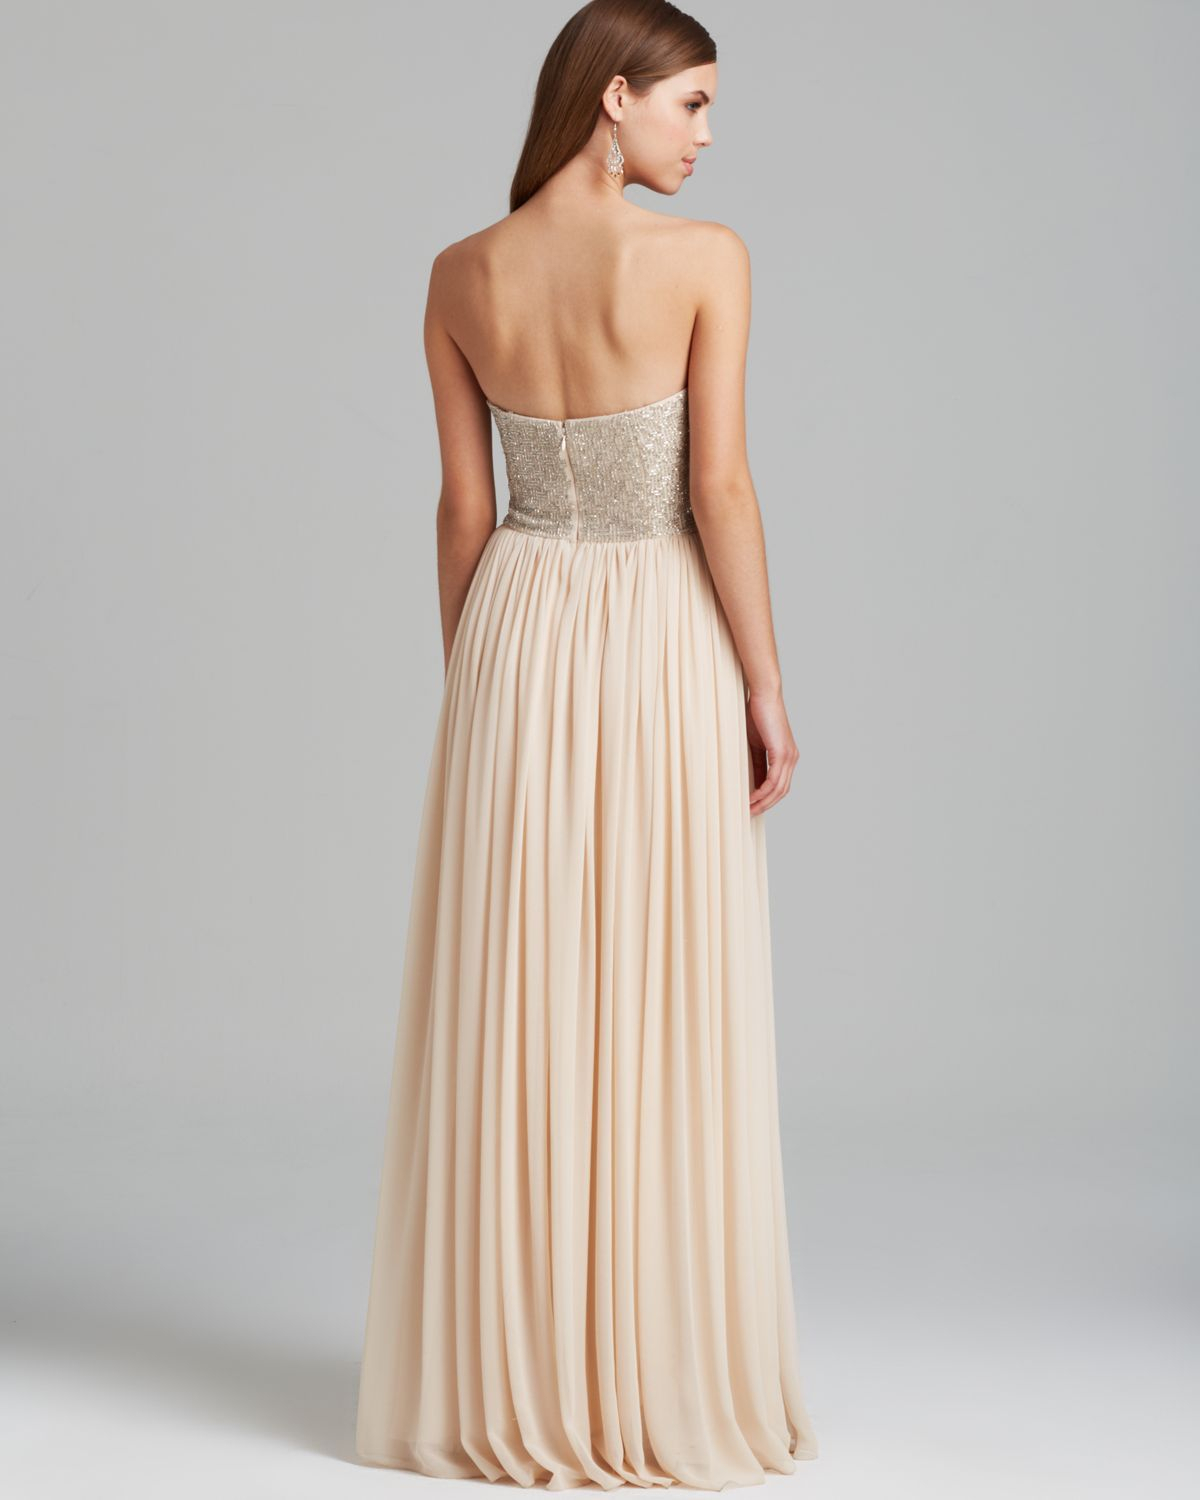 Lyst - Aidan Mattox Gown - Strapless Beaded Bodice With Pleated ...